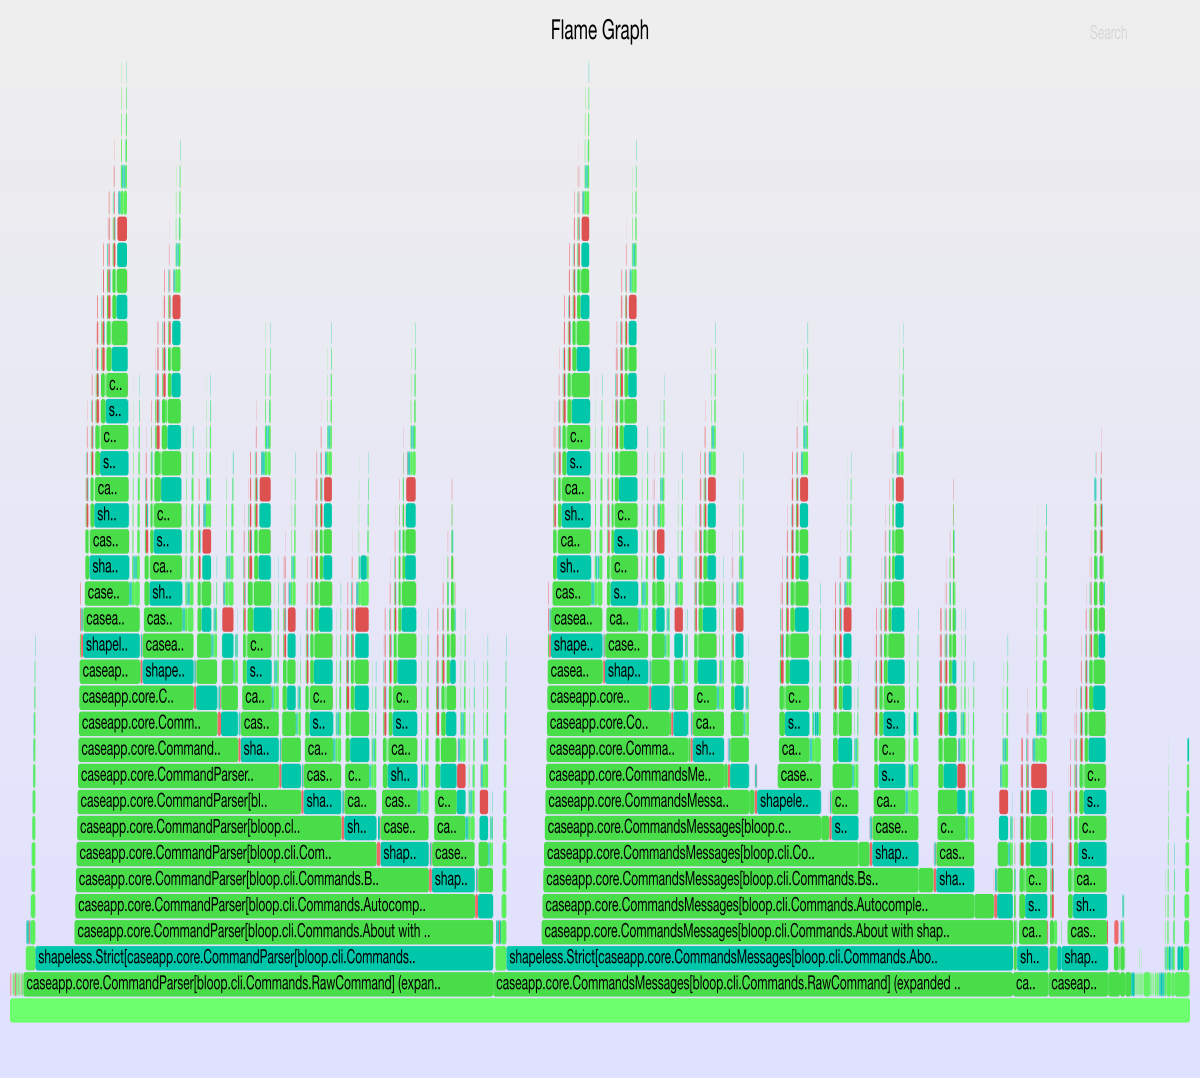 Flamegraph after case-app change